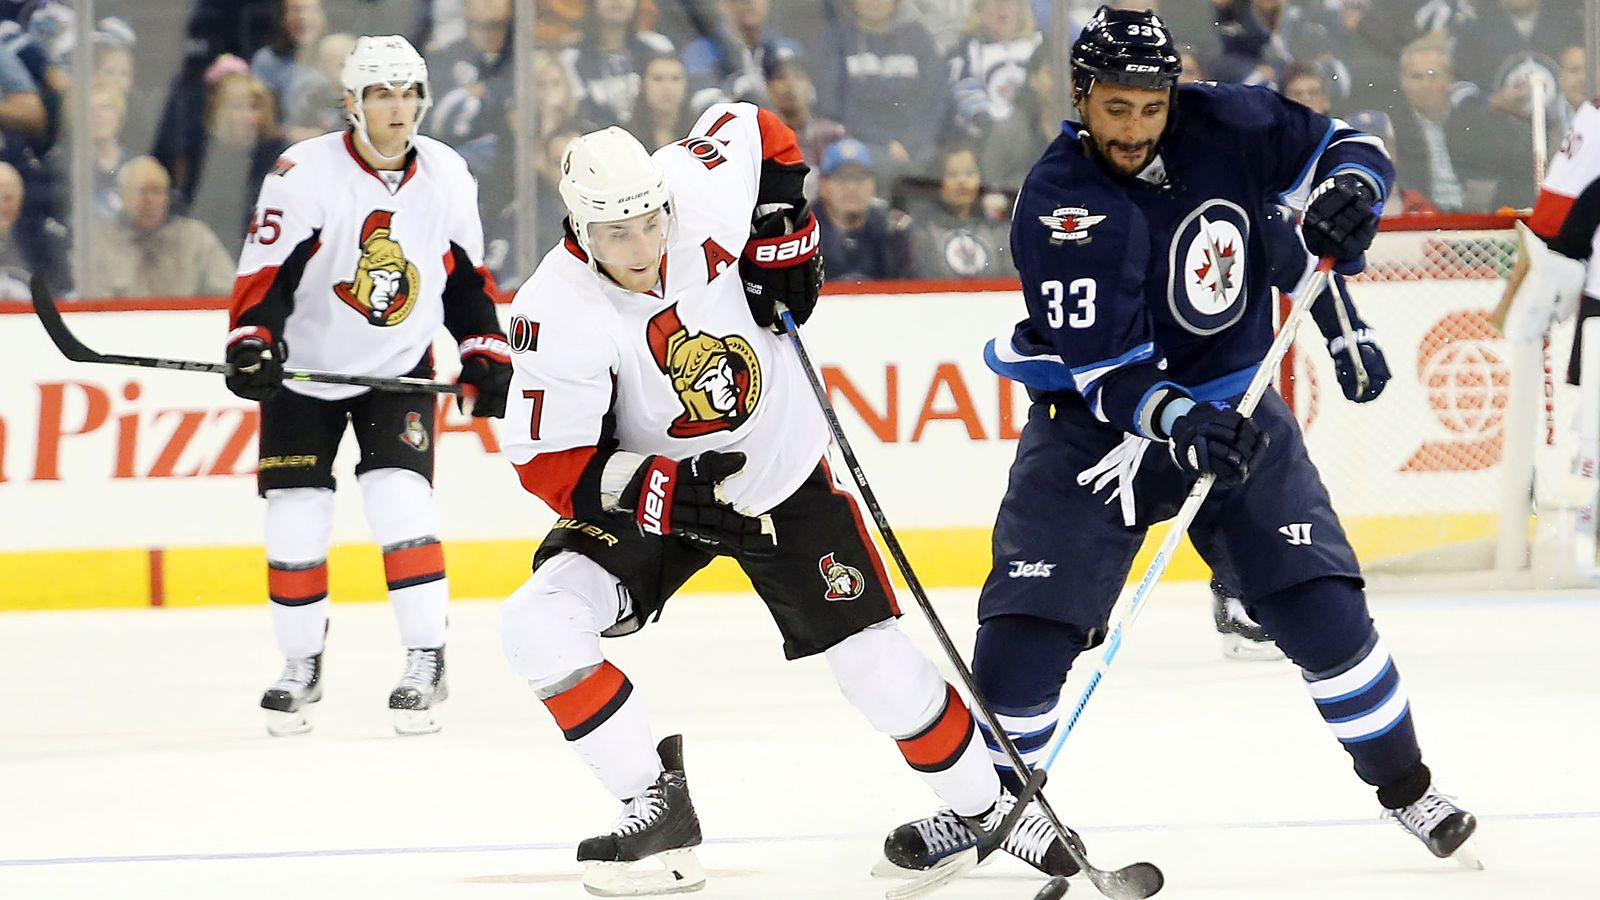 The NHLs offseason is under way and with free agency beginning July 1 there will be plenty of action this summer Check back here for all of the trades